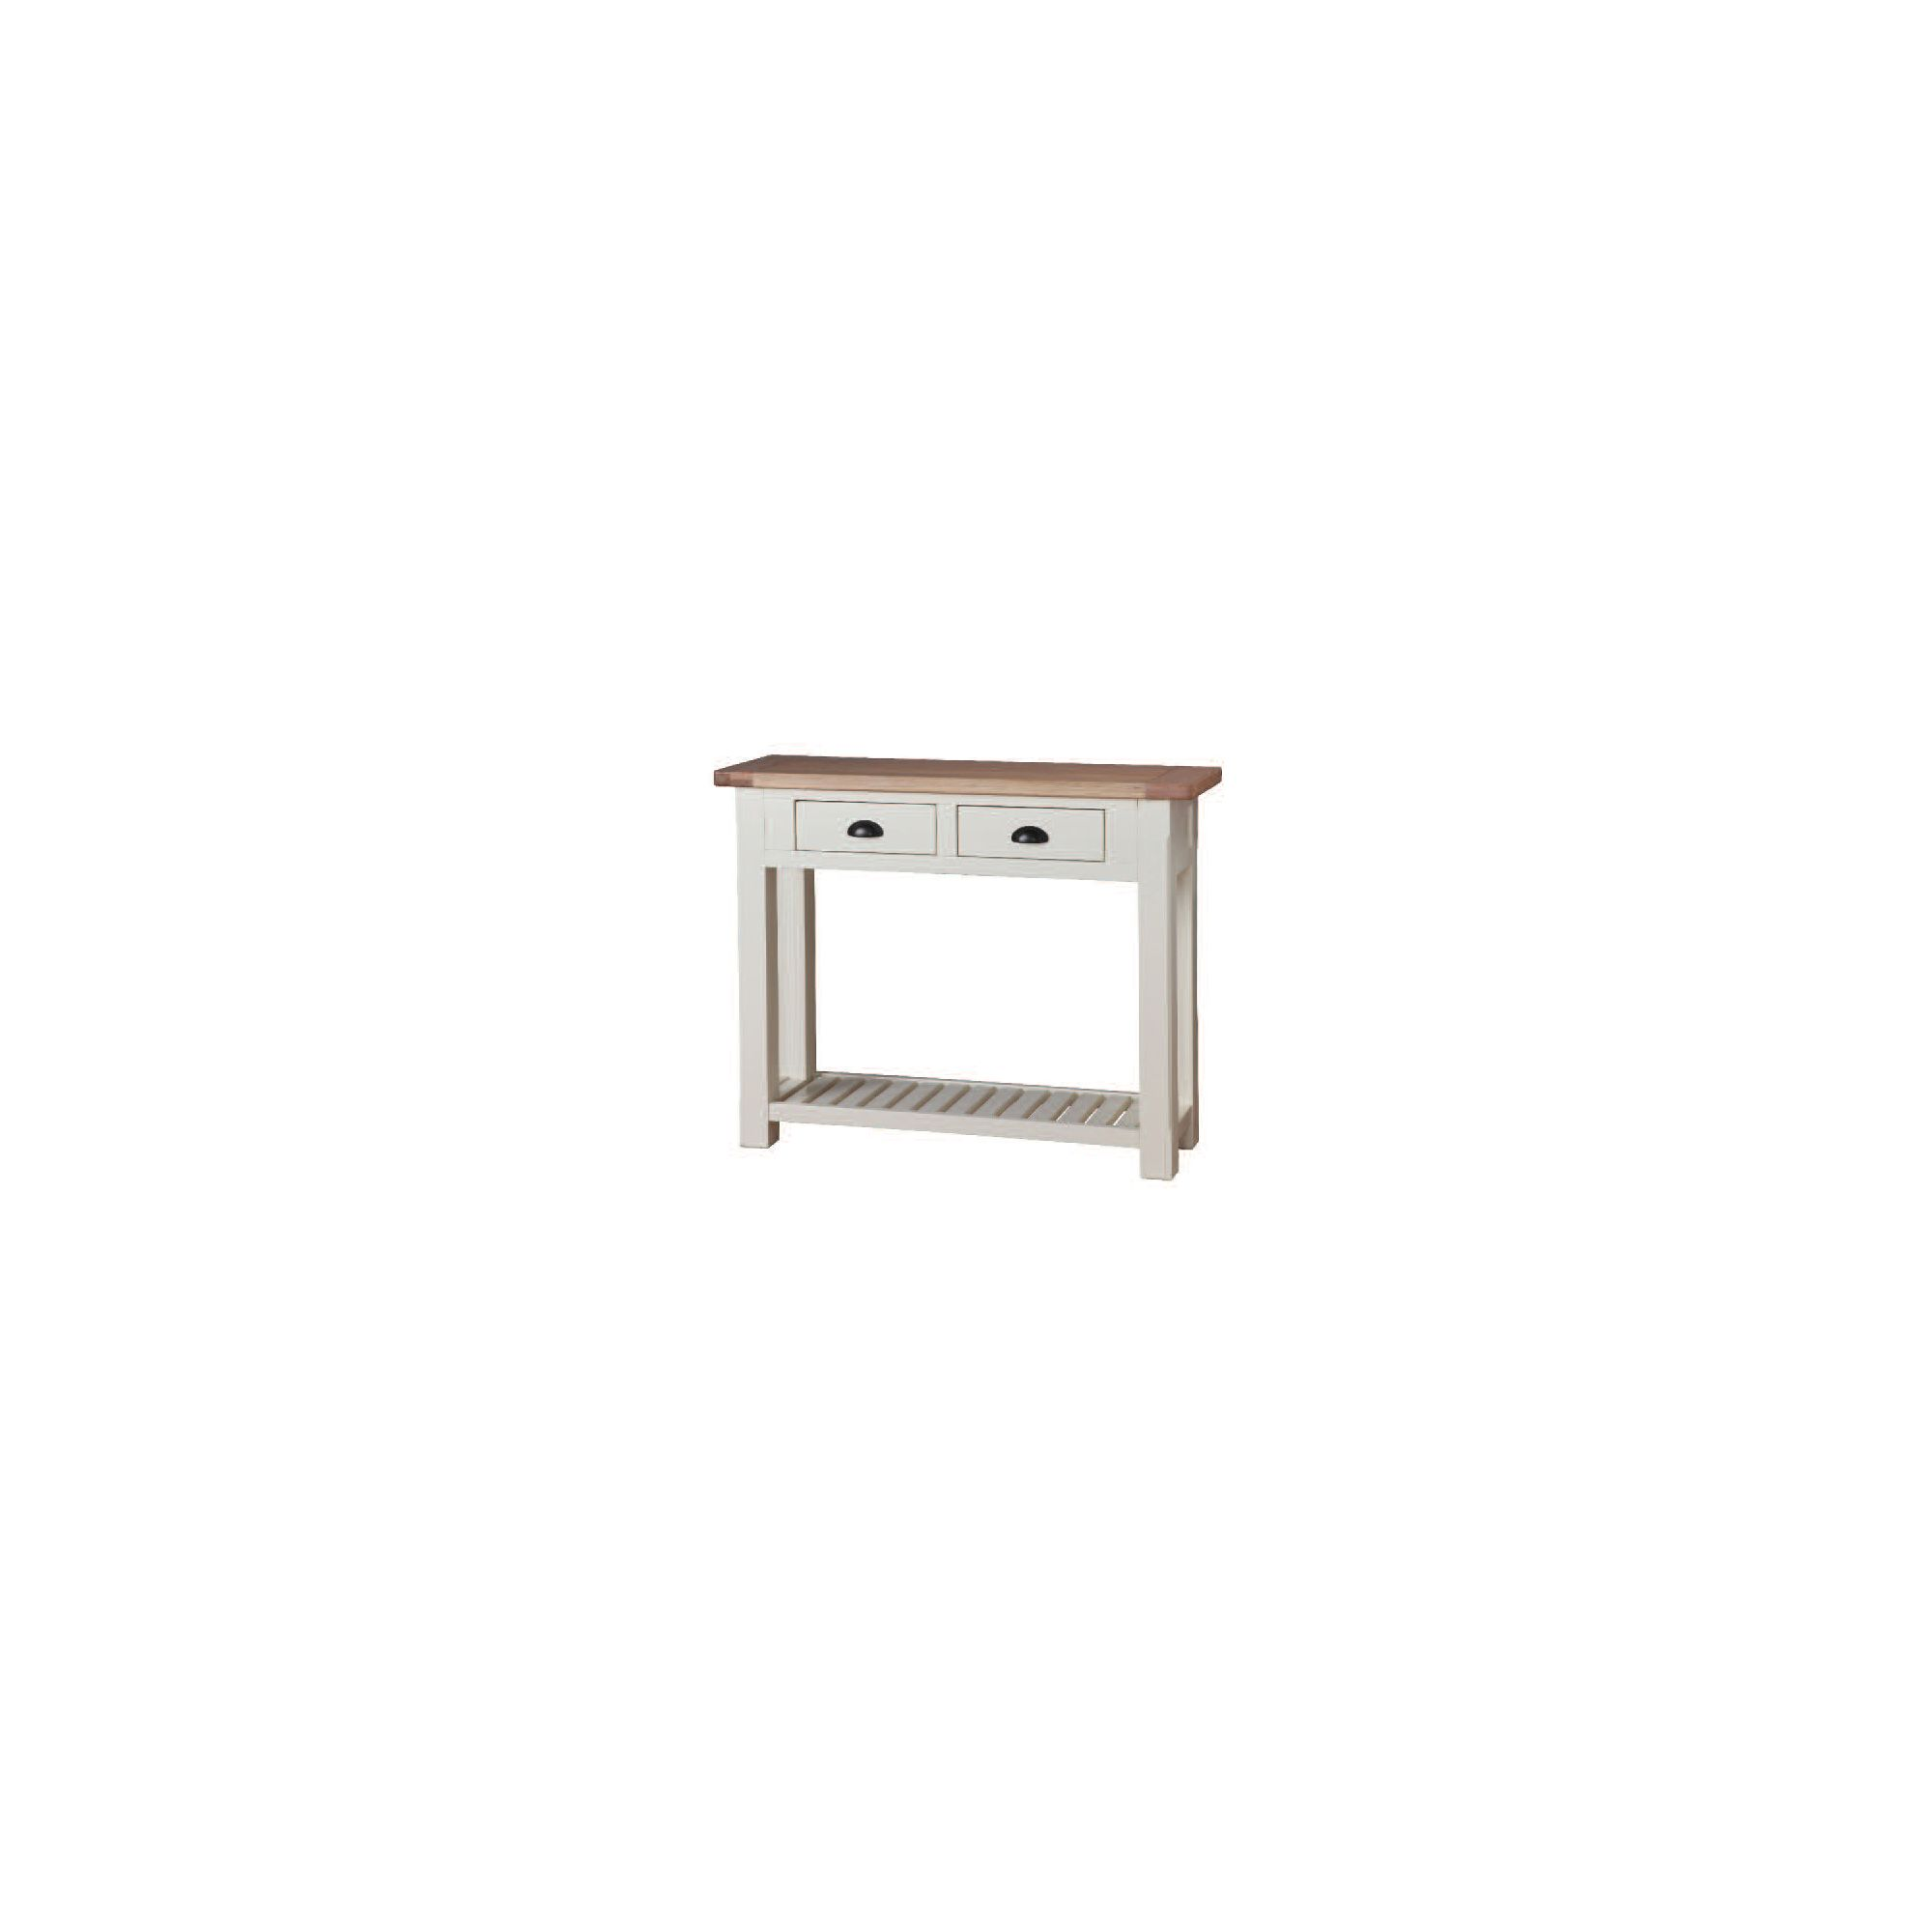 Wilkinson Furniture Buttermere Two Drawer Console Table in Ivory